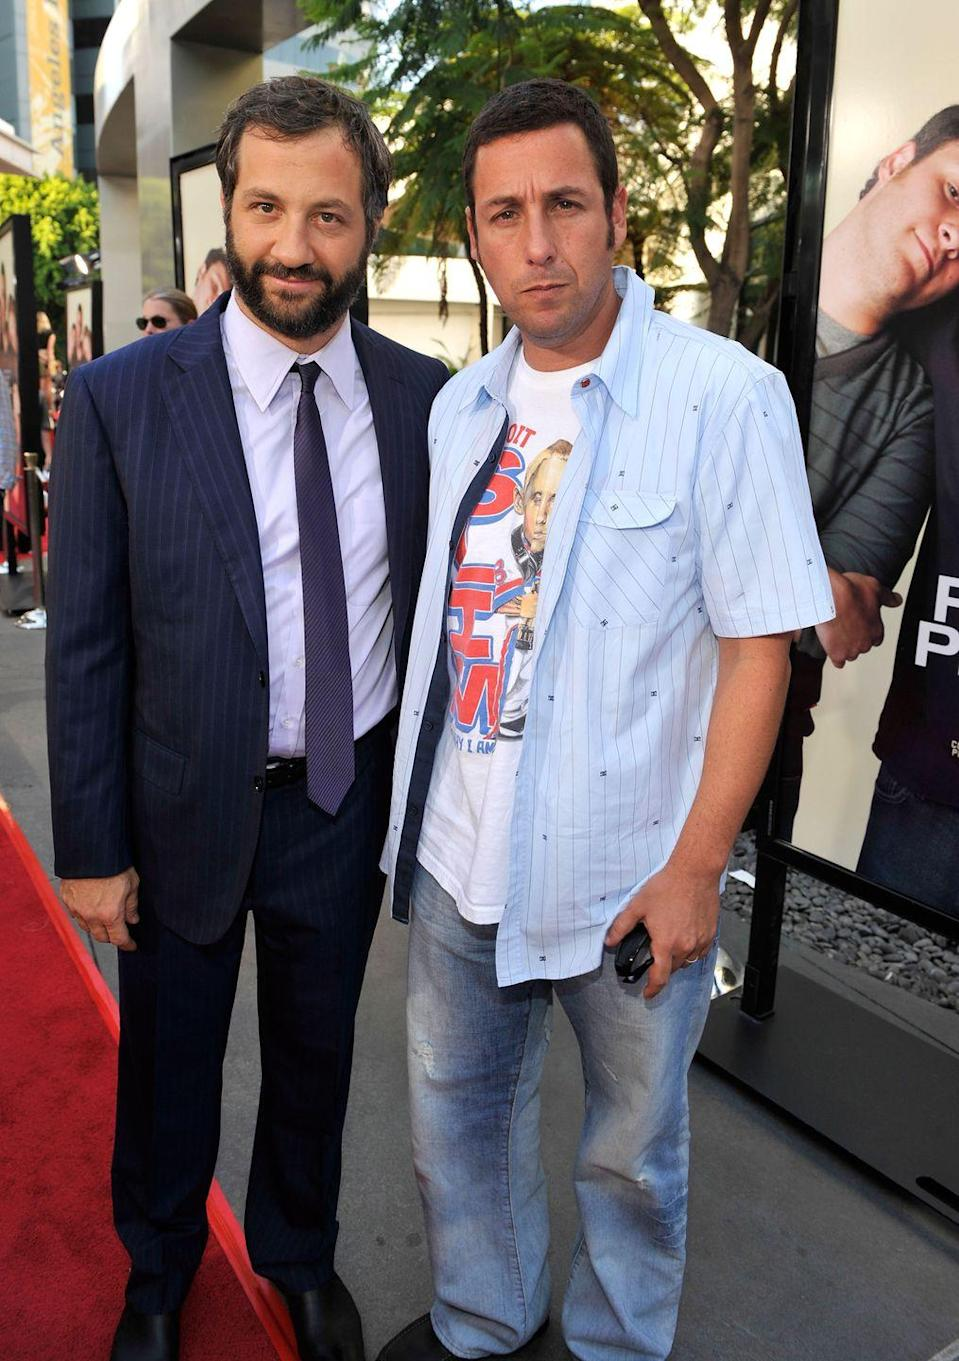 """<p>The comedians <a href=""""https://www.hollywoodreporter.com/live-feed/adam-sandler-judd-apatow-spill-407141"""" rel=""""nofollow noopener"""" target=""""_blank"""" data-ylk=""""slk:split the rent on a $900 apartment"""" class=""""link rapid-noclick-resp"""">split the rent on a $900 apartment</a> in San Fernando Valley before Sandler moved to New York City. """"We were doing as comedians good enough to get by,"""" Sandler said. """"We could eat at Red Lobster once every month. That was a big night out.""""</p>"""